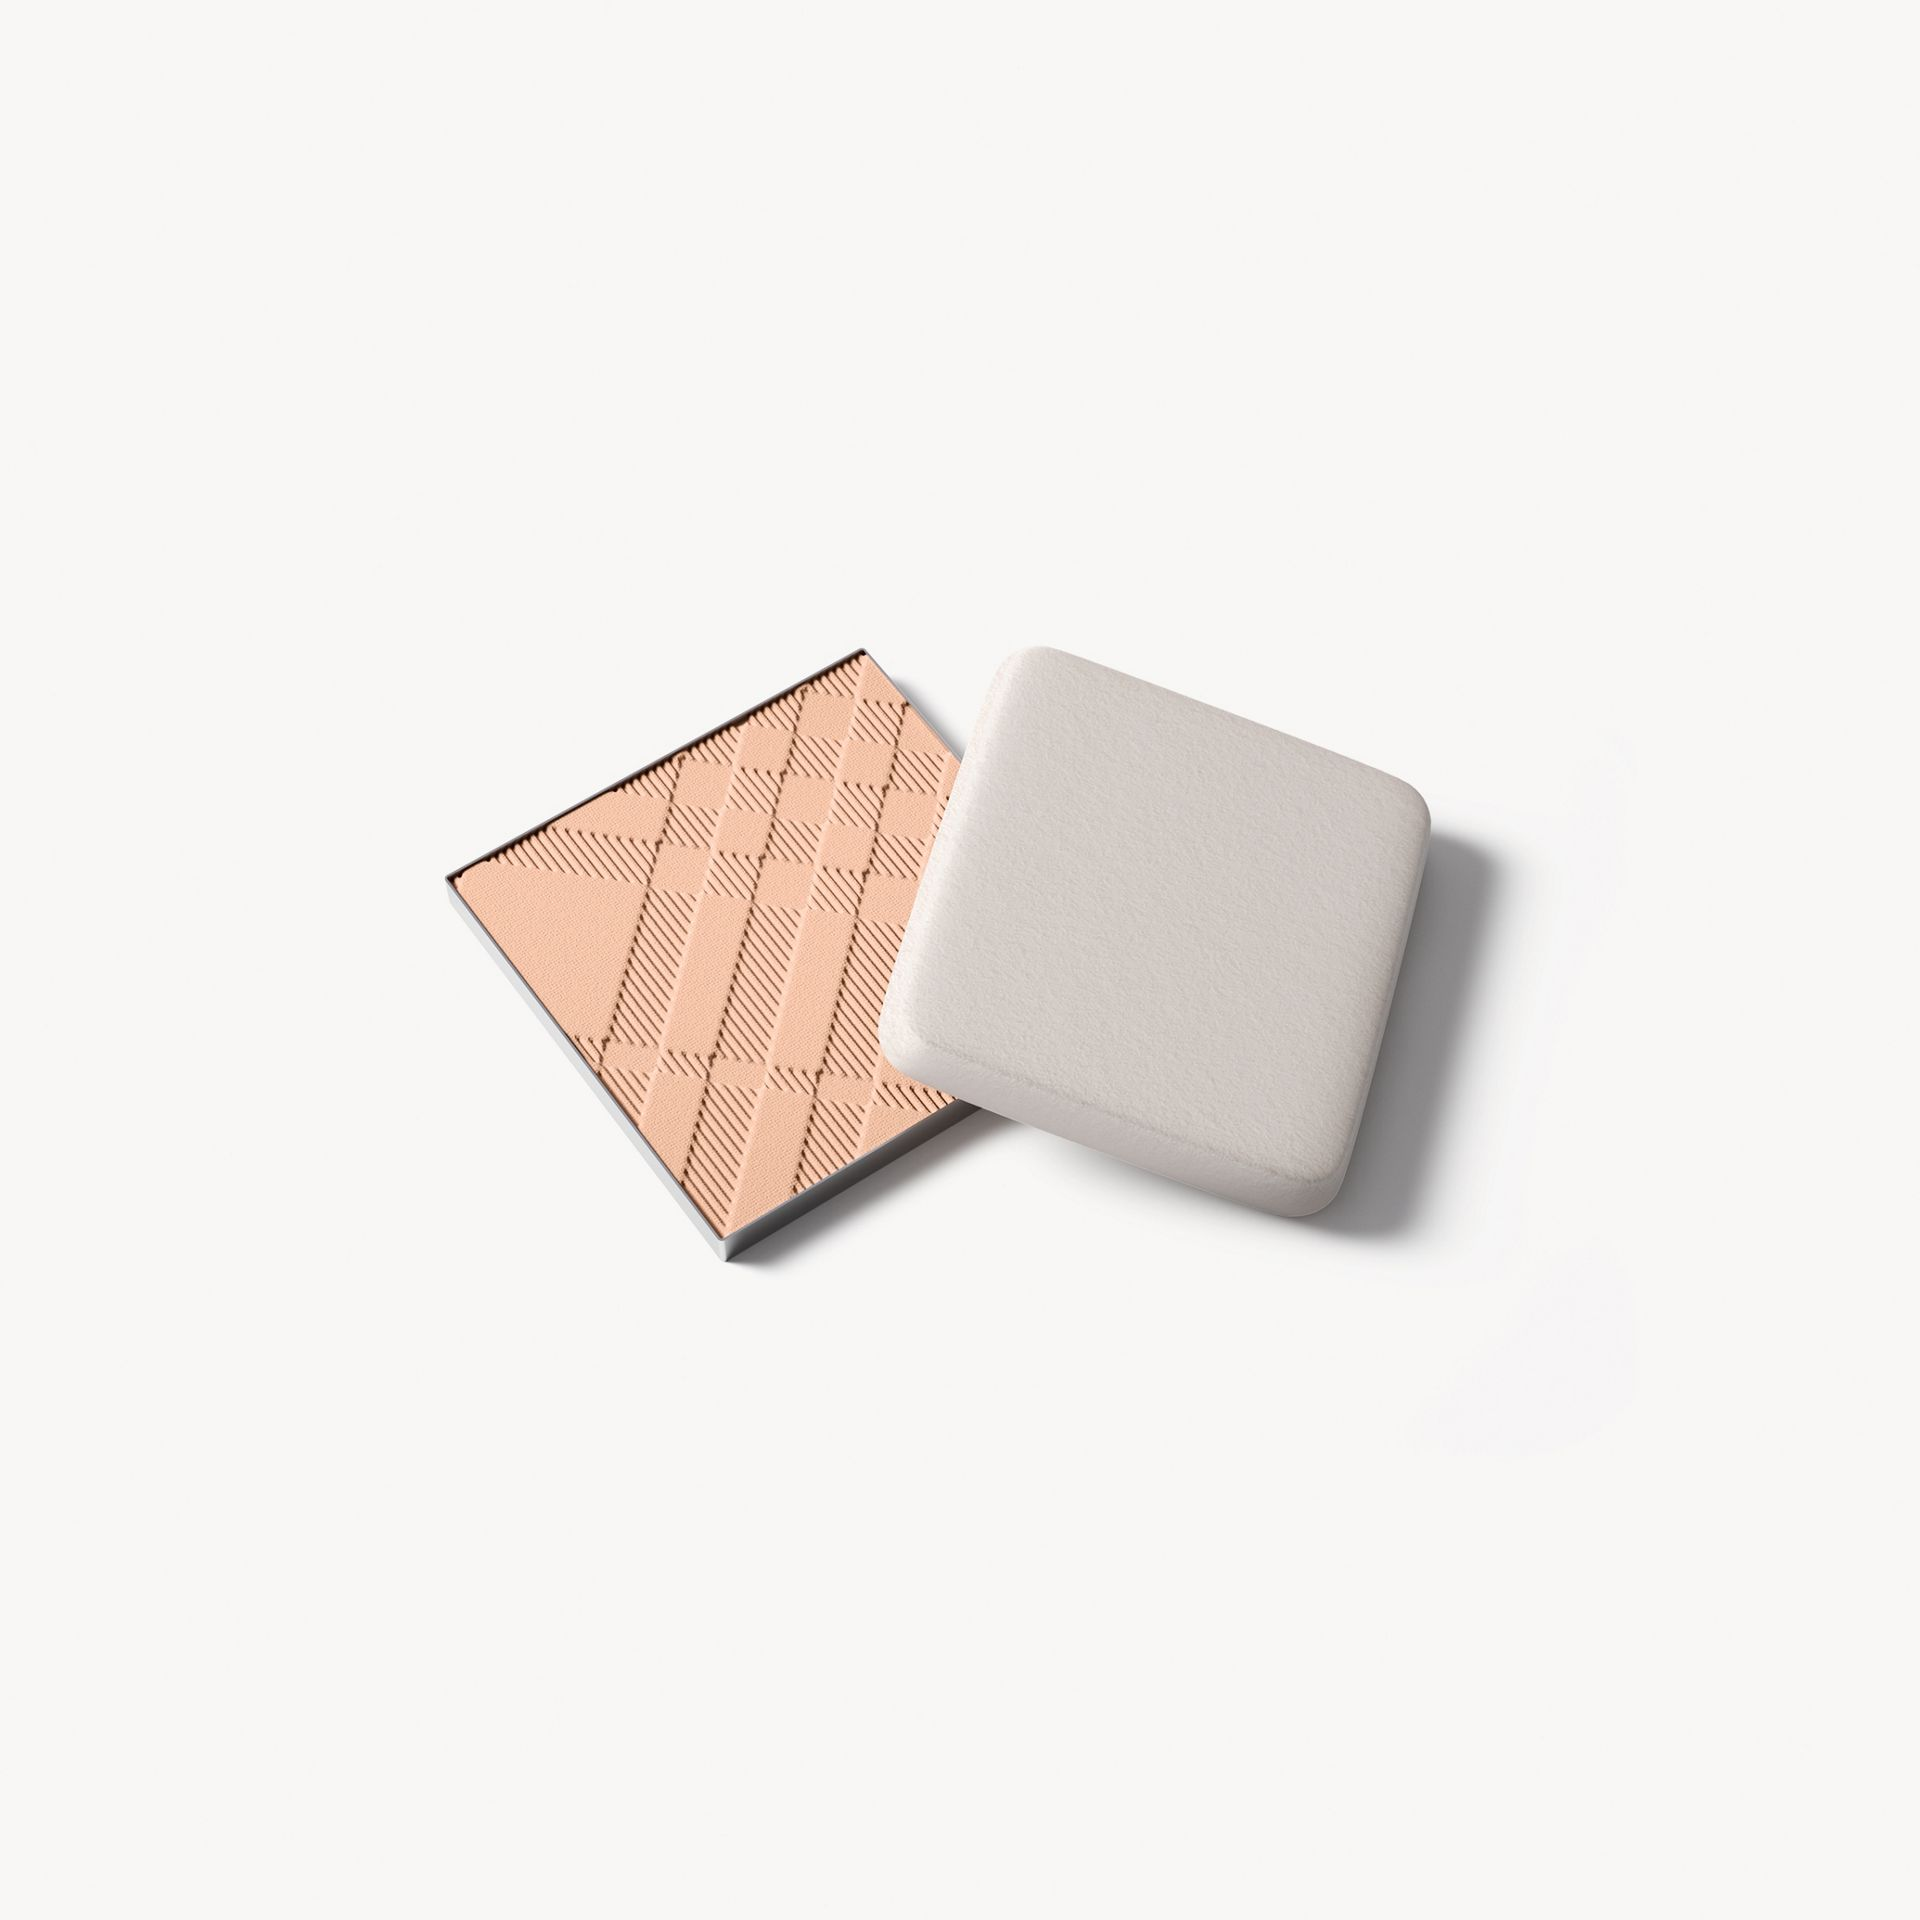 Bright Glow Compact SPF 25 PA +++ – Rosy Nude No.31 - gallery image 1